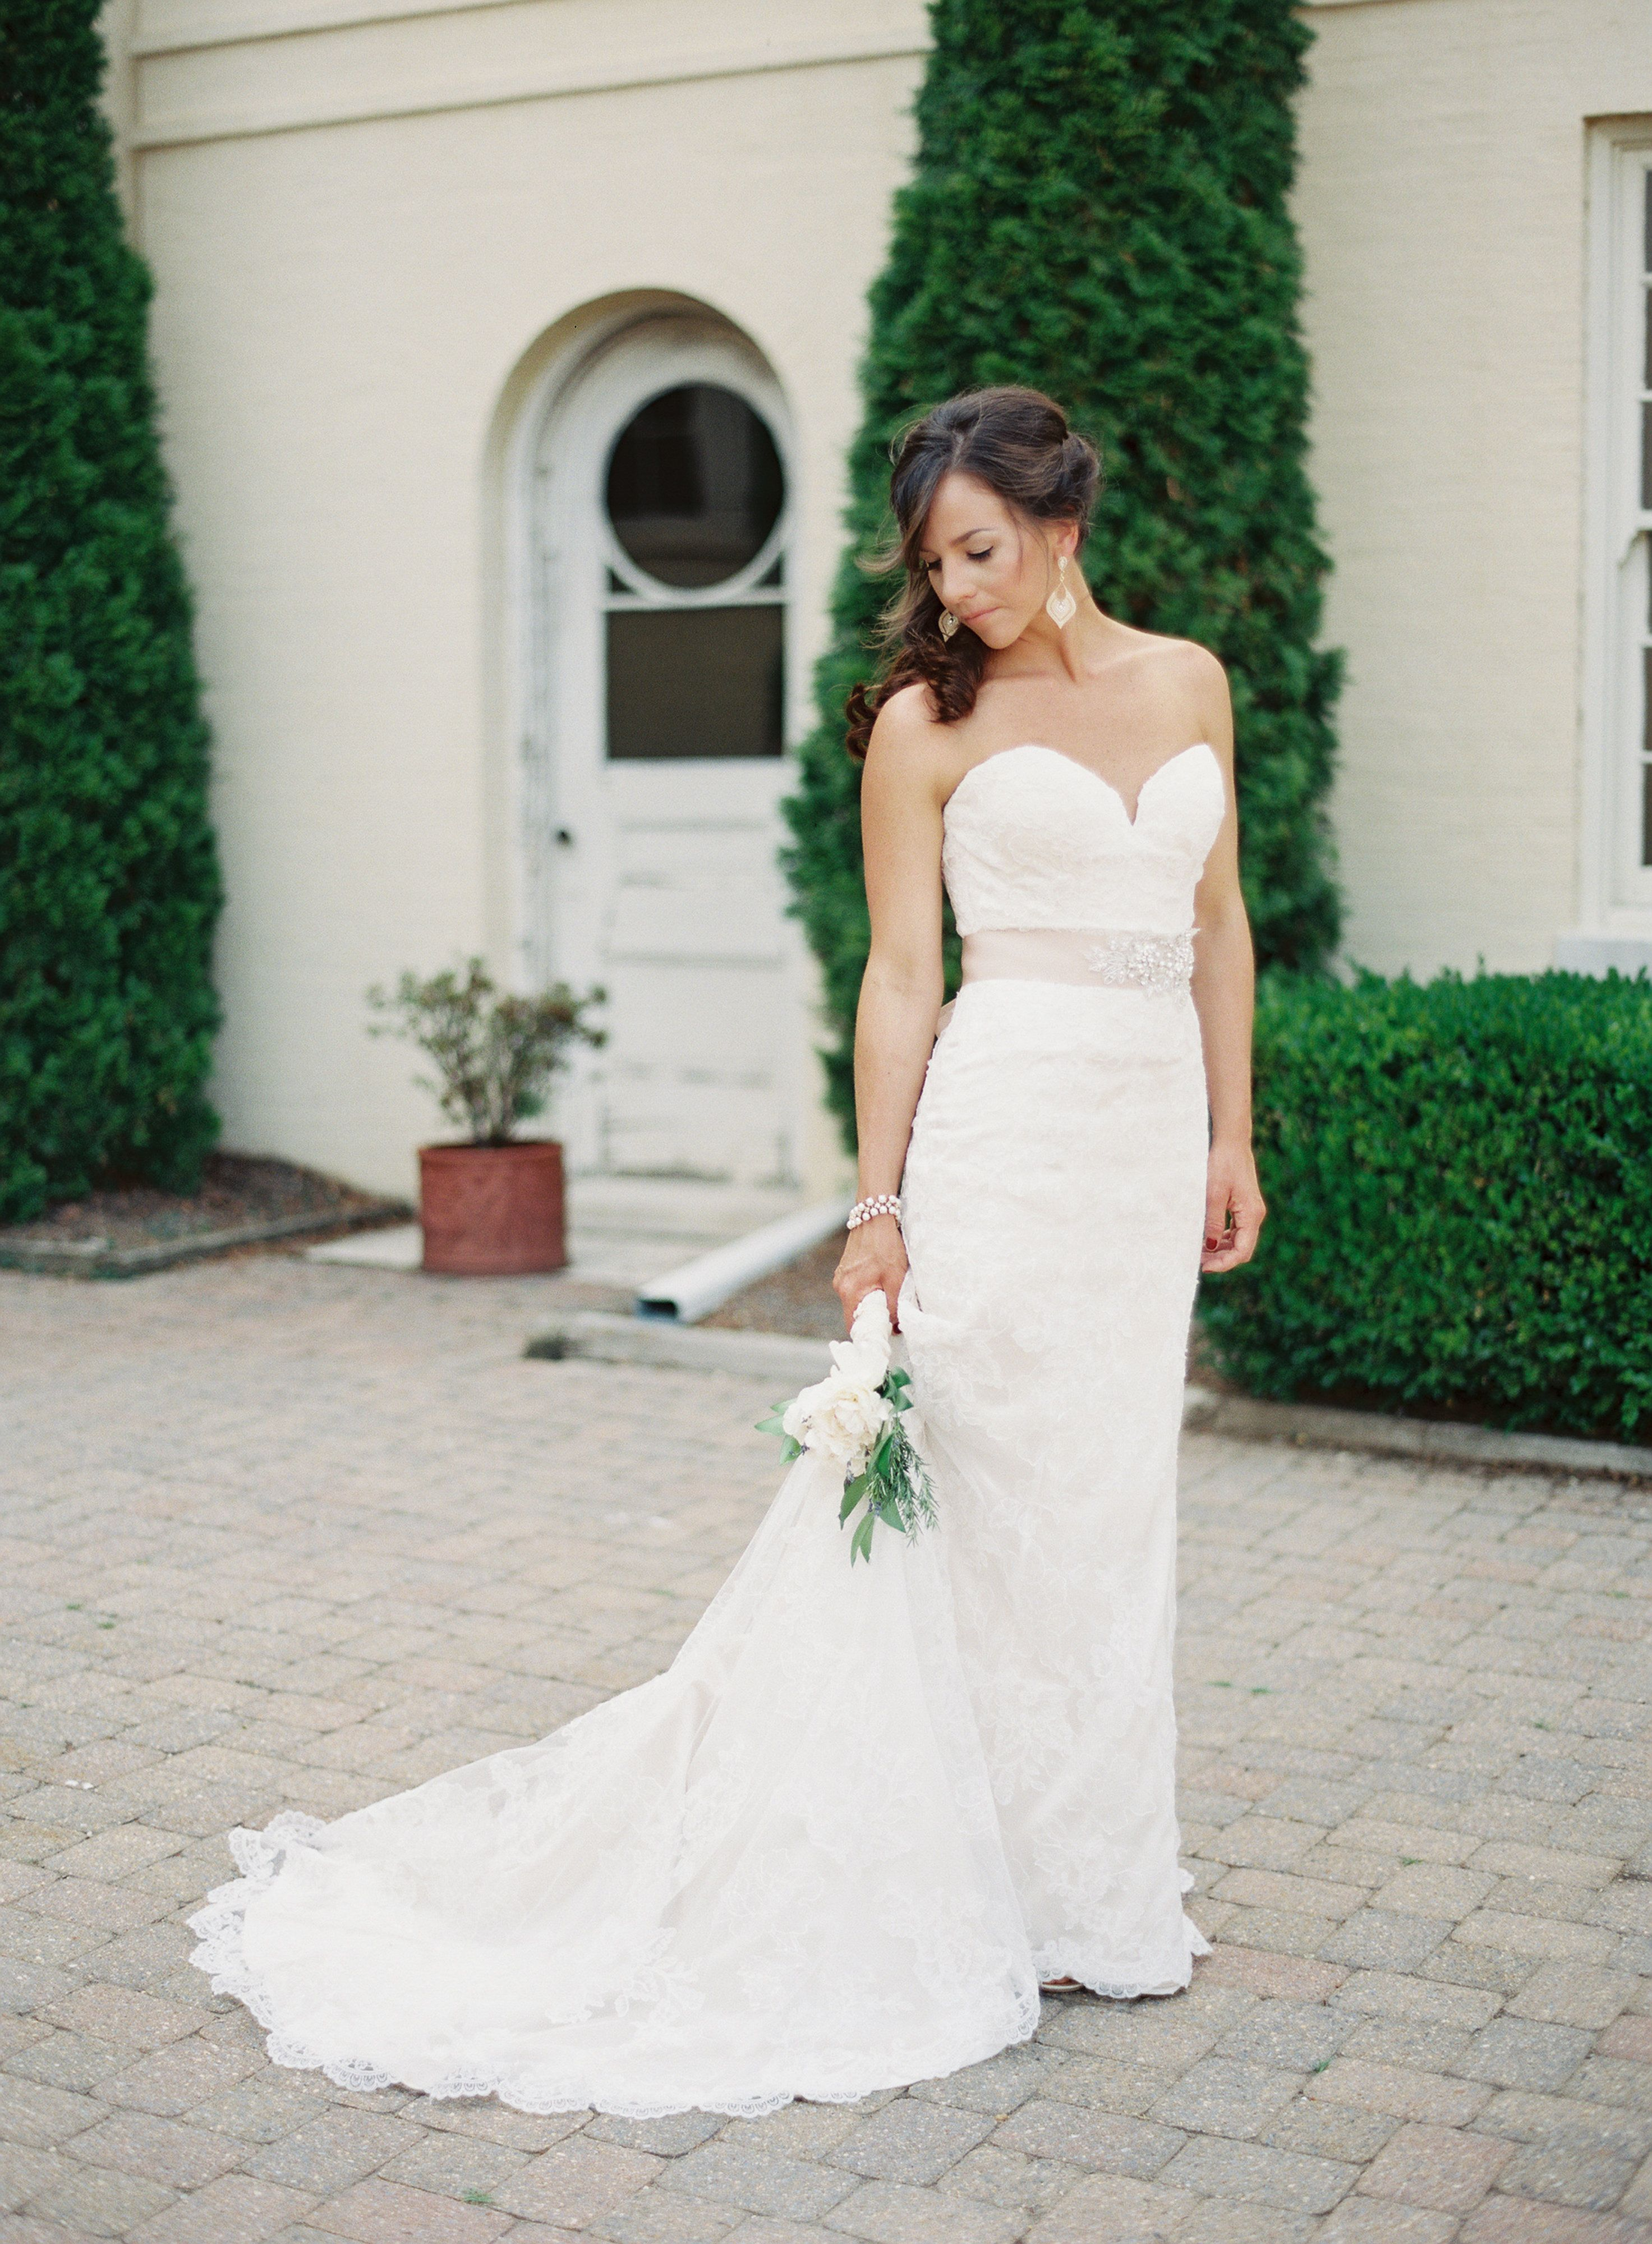 Dresses for summer wedding reception  Rustic Glam Summer Wedding at Evergreen Museum  Library  Stella